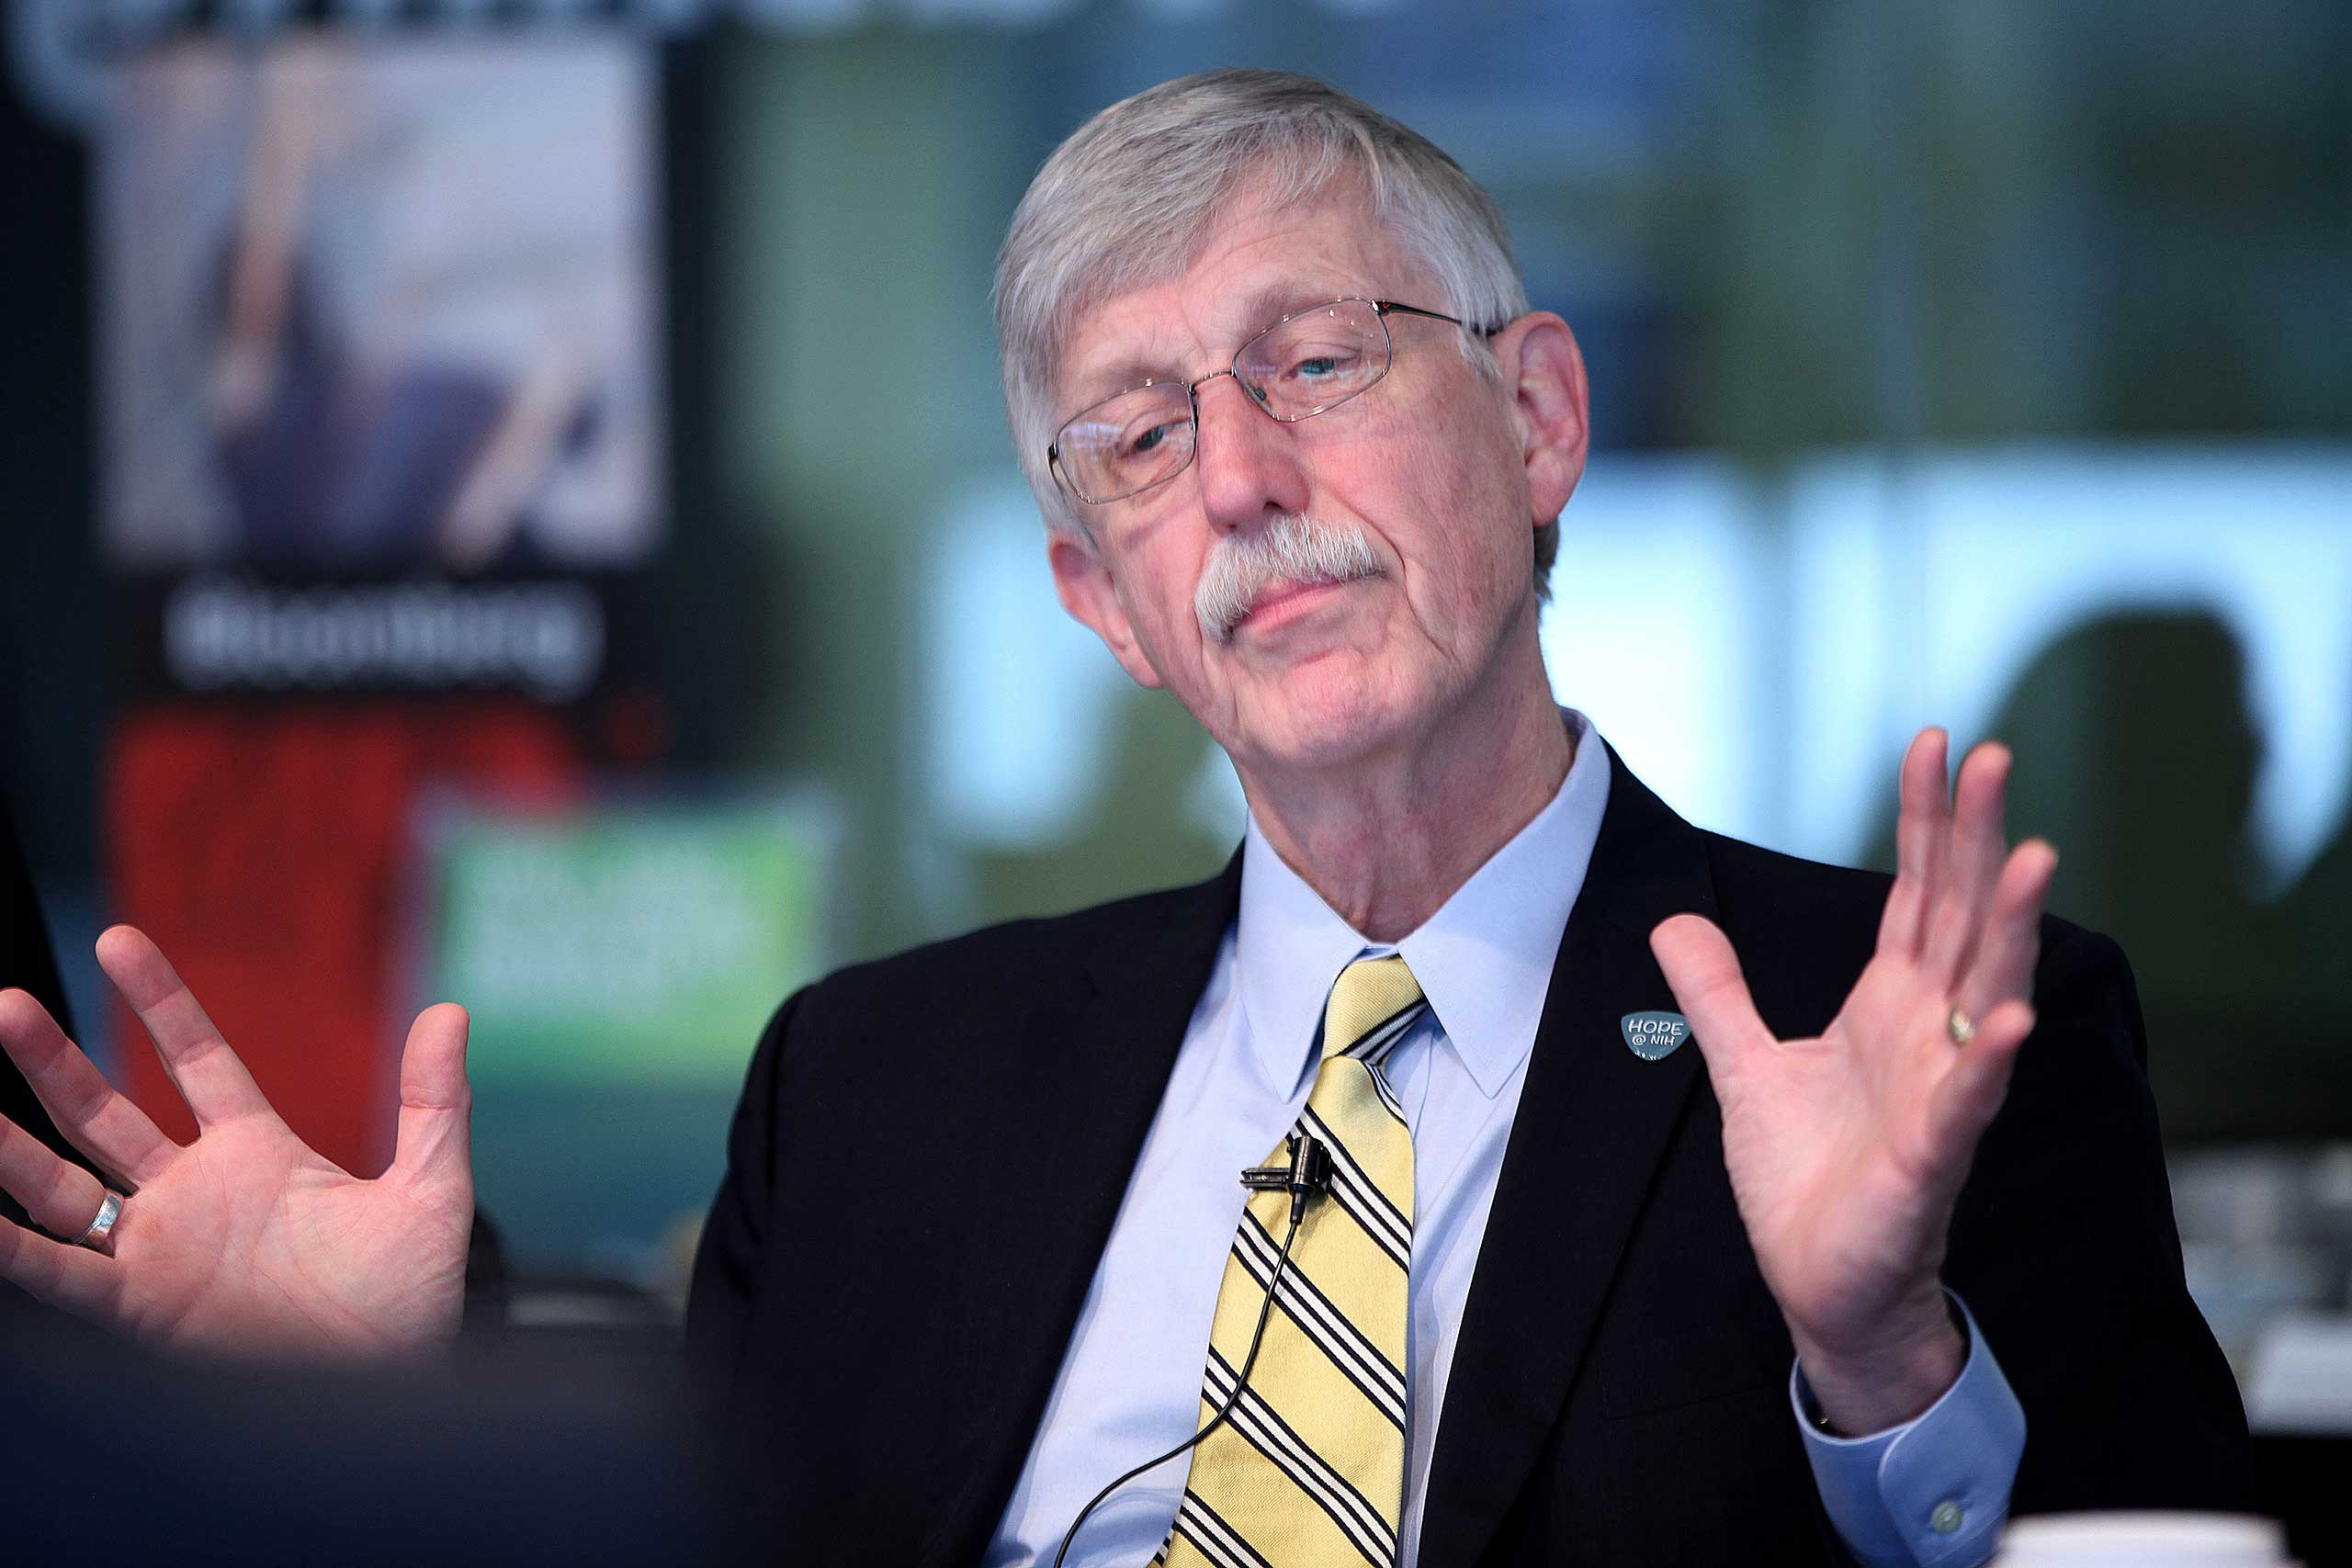 National Institutes of Health Director Francis Collins speaks during an interview in Washington on April 11, 2014.